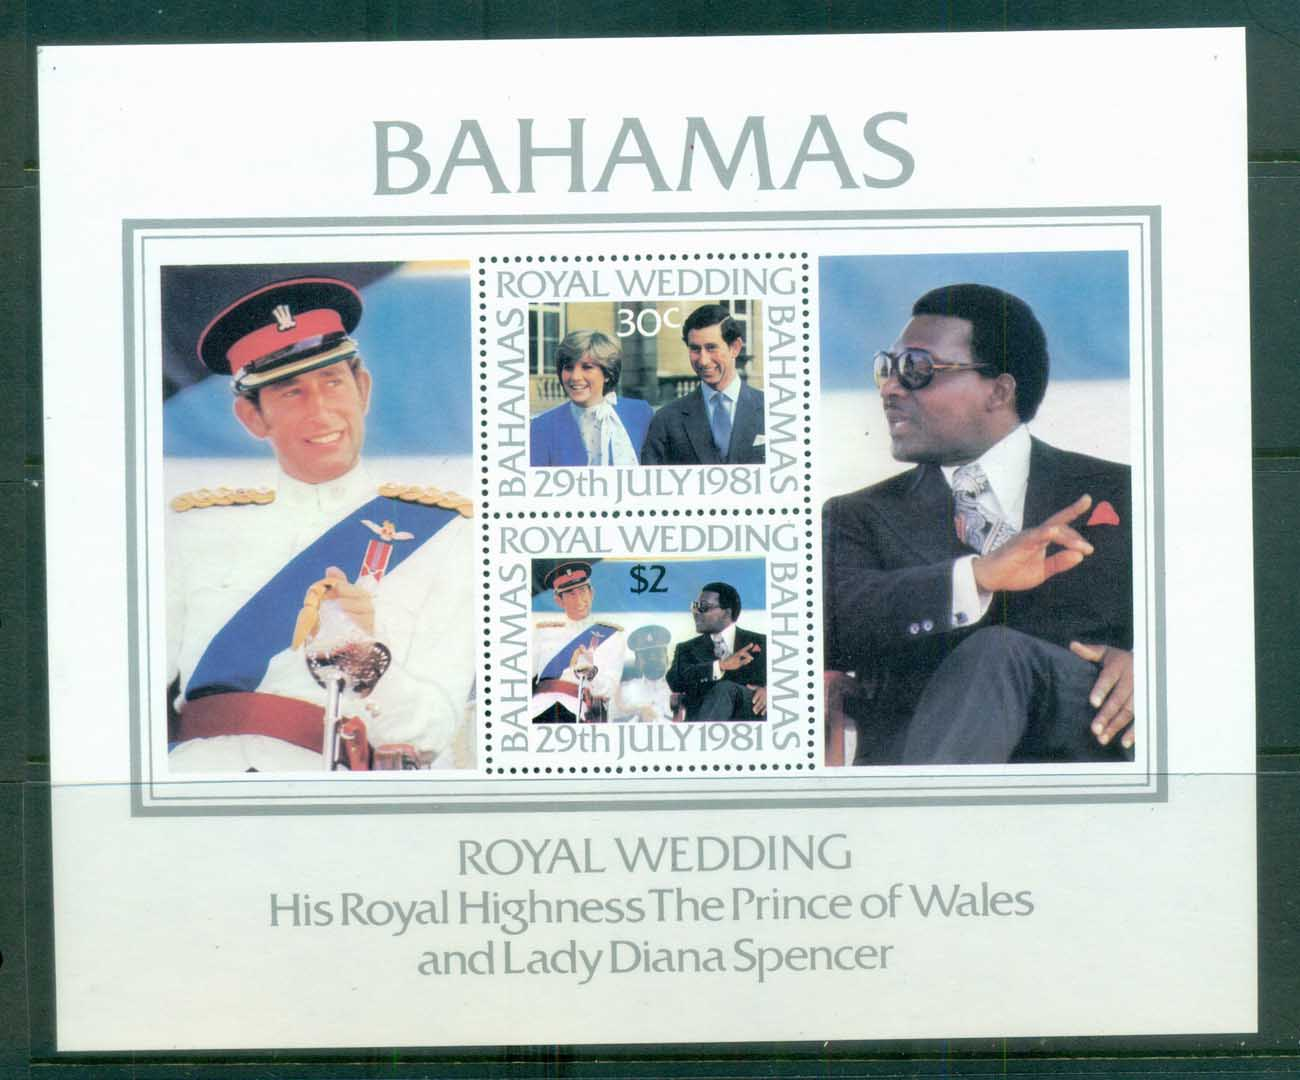 Bahamas 1981 Charles & Diana Royal Wedding MS MUH lot81932